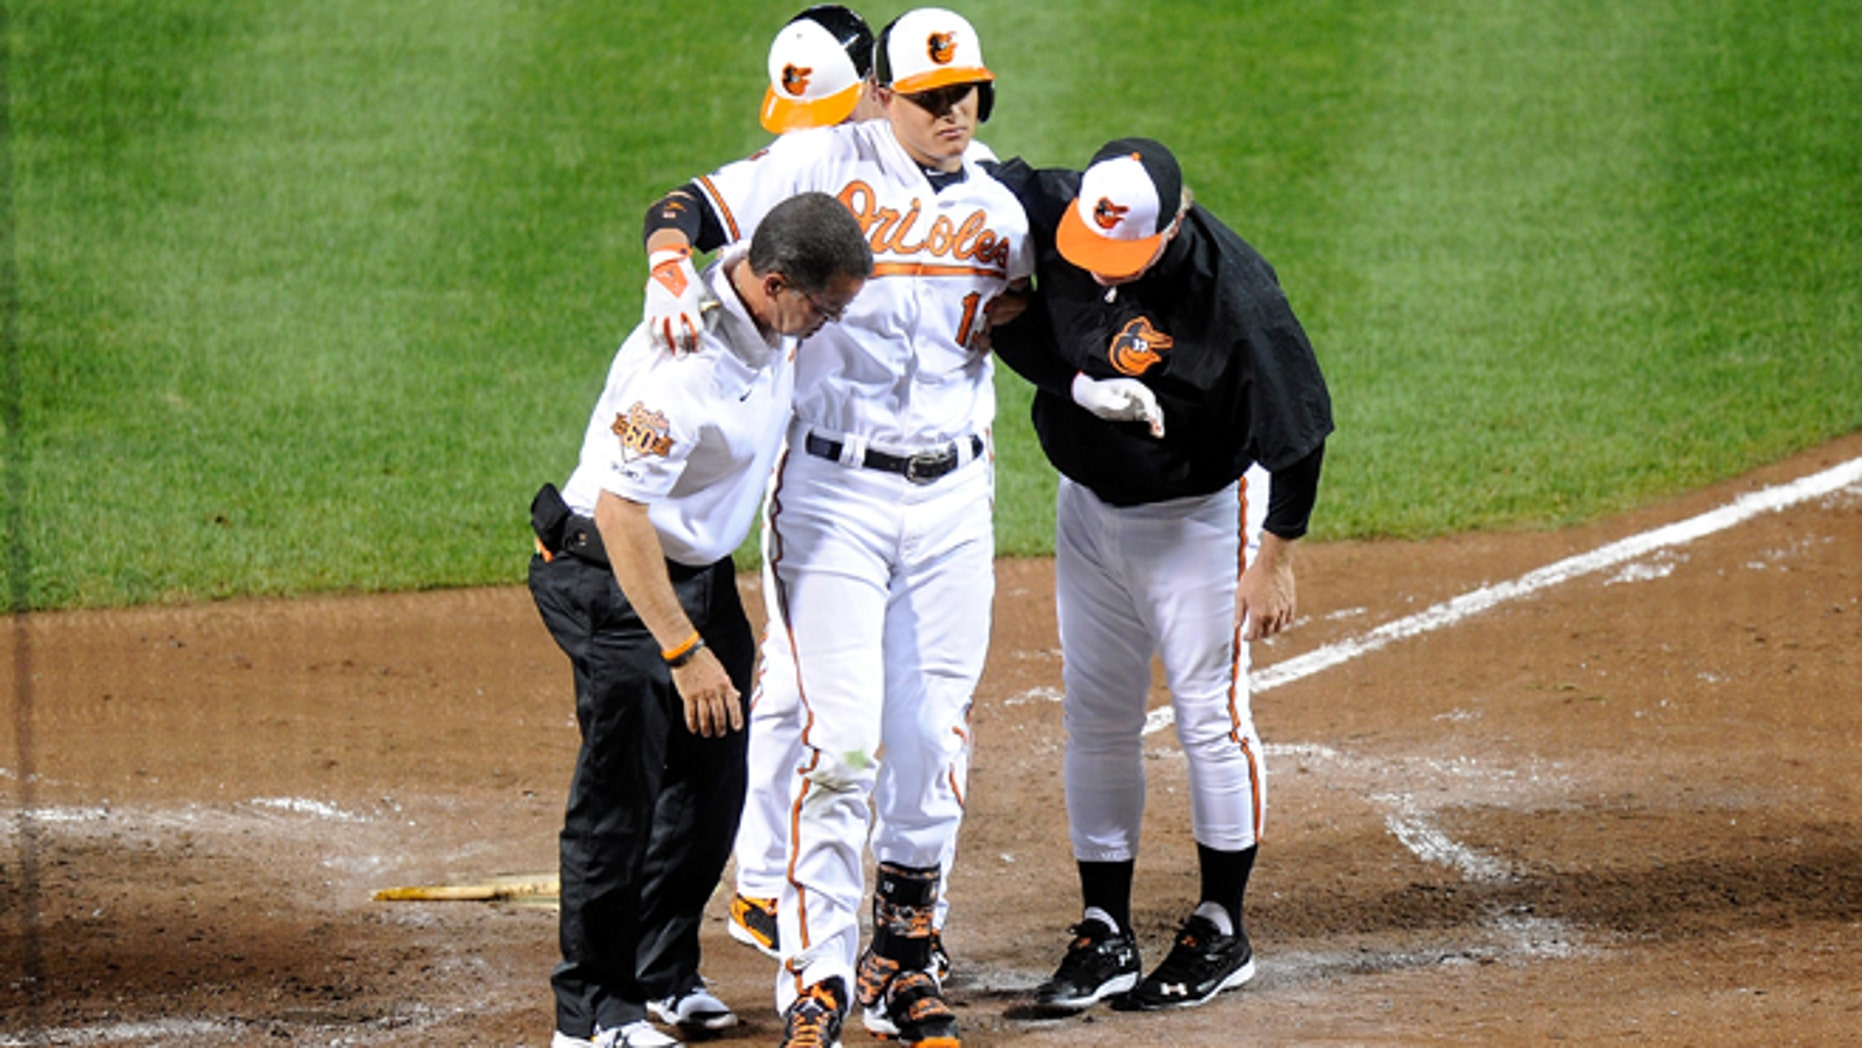 sale retailer 24275 57f9c Baltimore Orioles 11-3 Win Over NY Tempered By Machado's ...